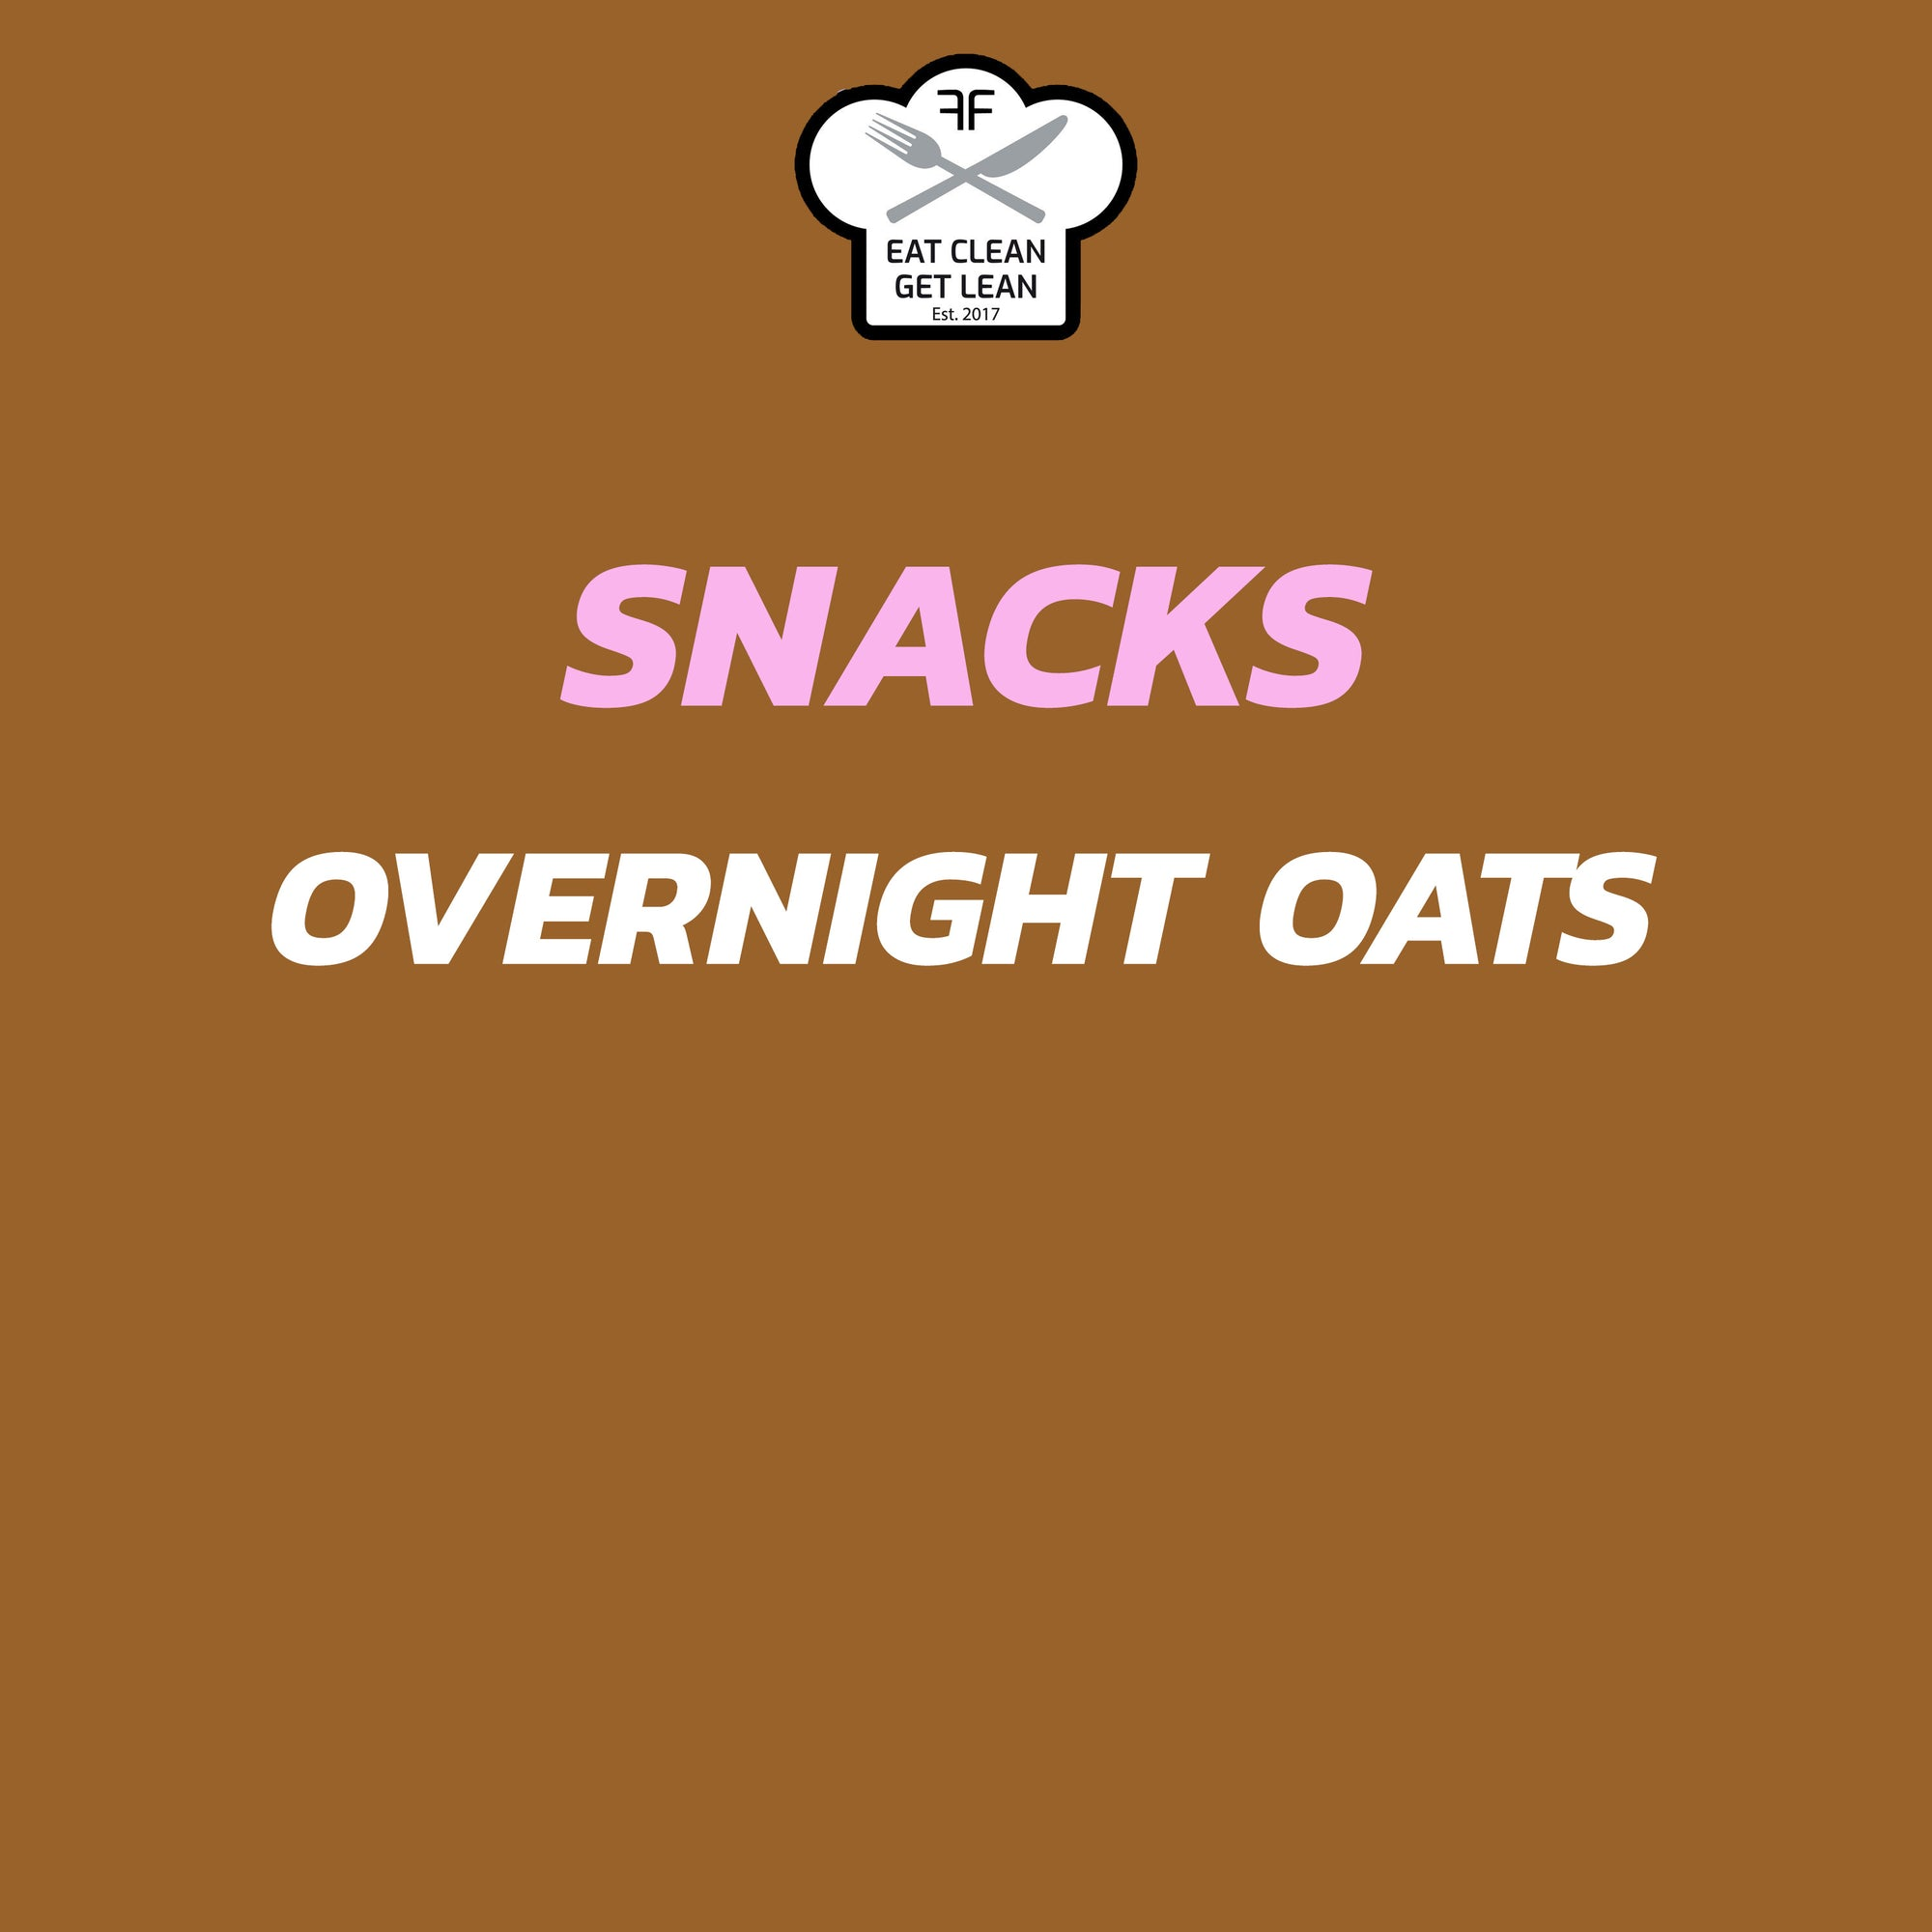 Snacks - Overnight Oats